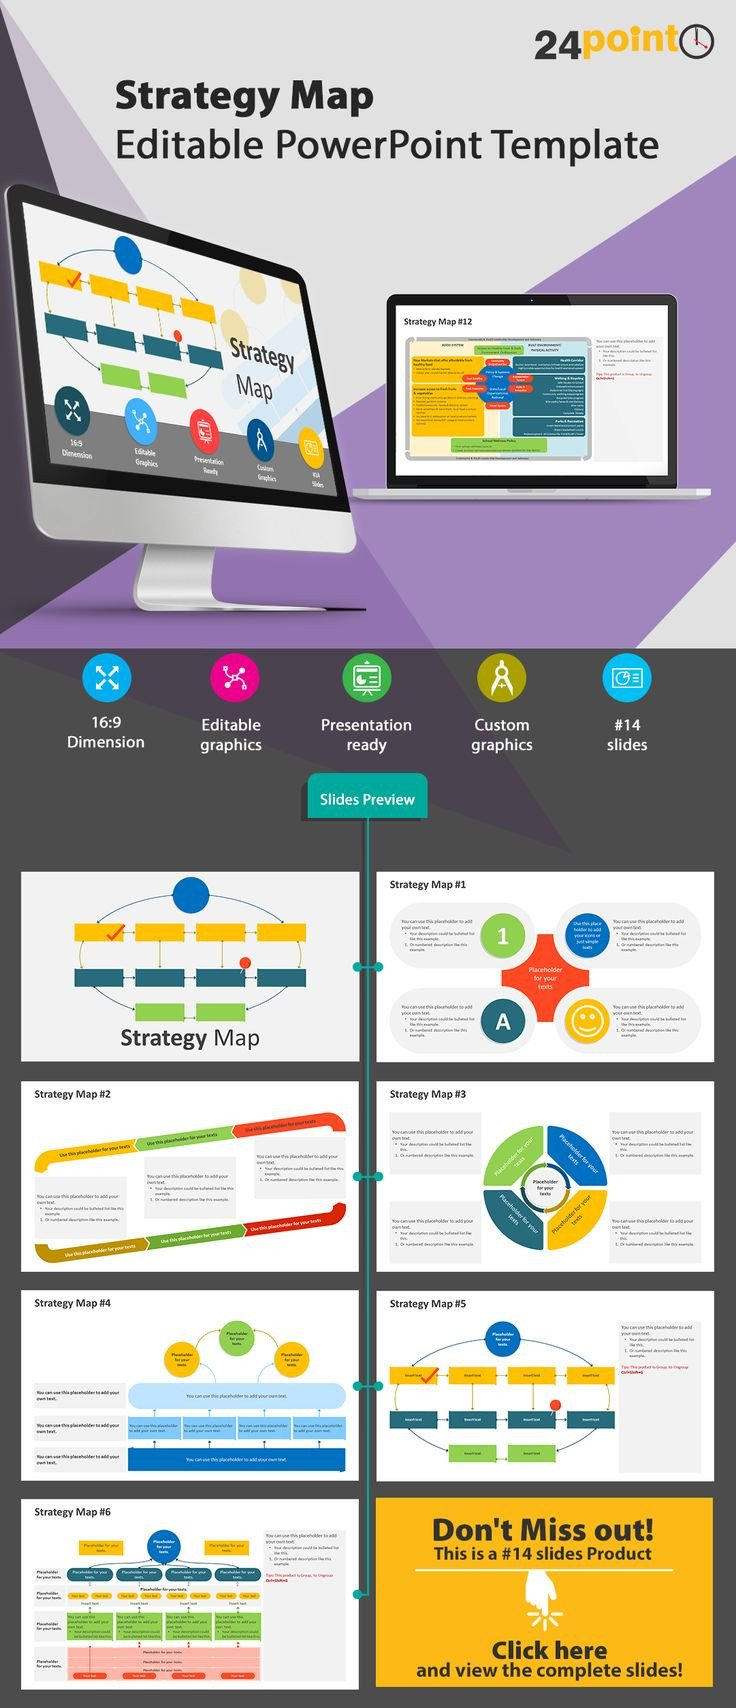 Strategic Group Mapping Template 136 Best Images About Business Concepts & Models